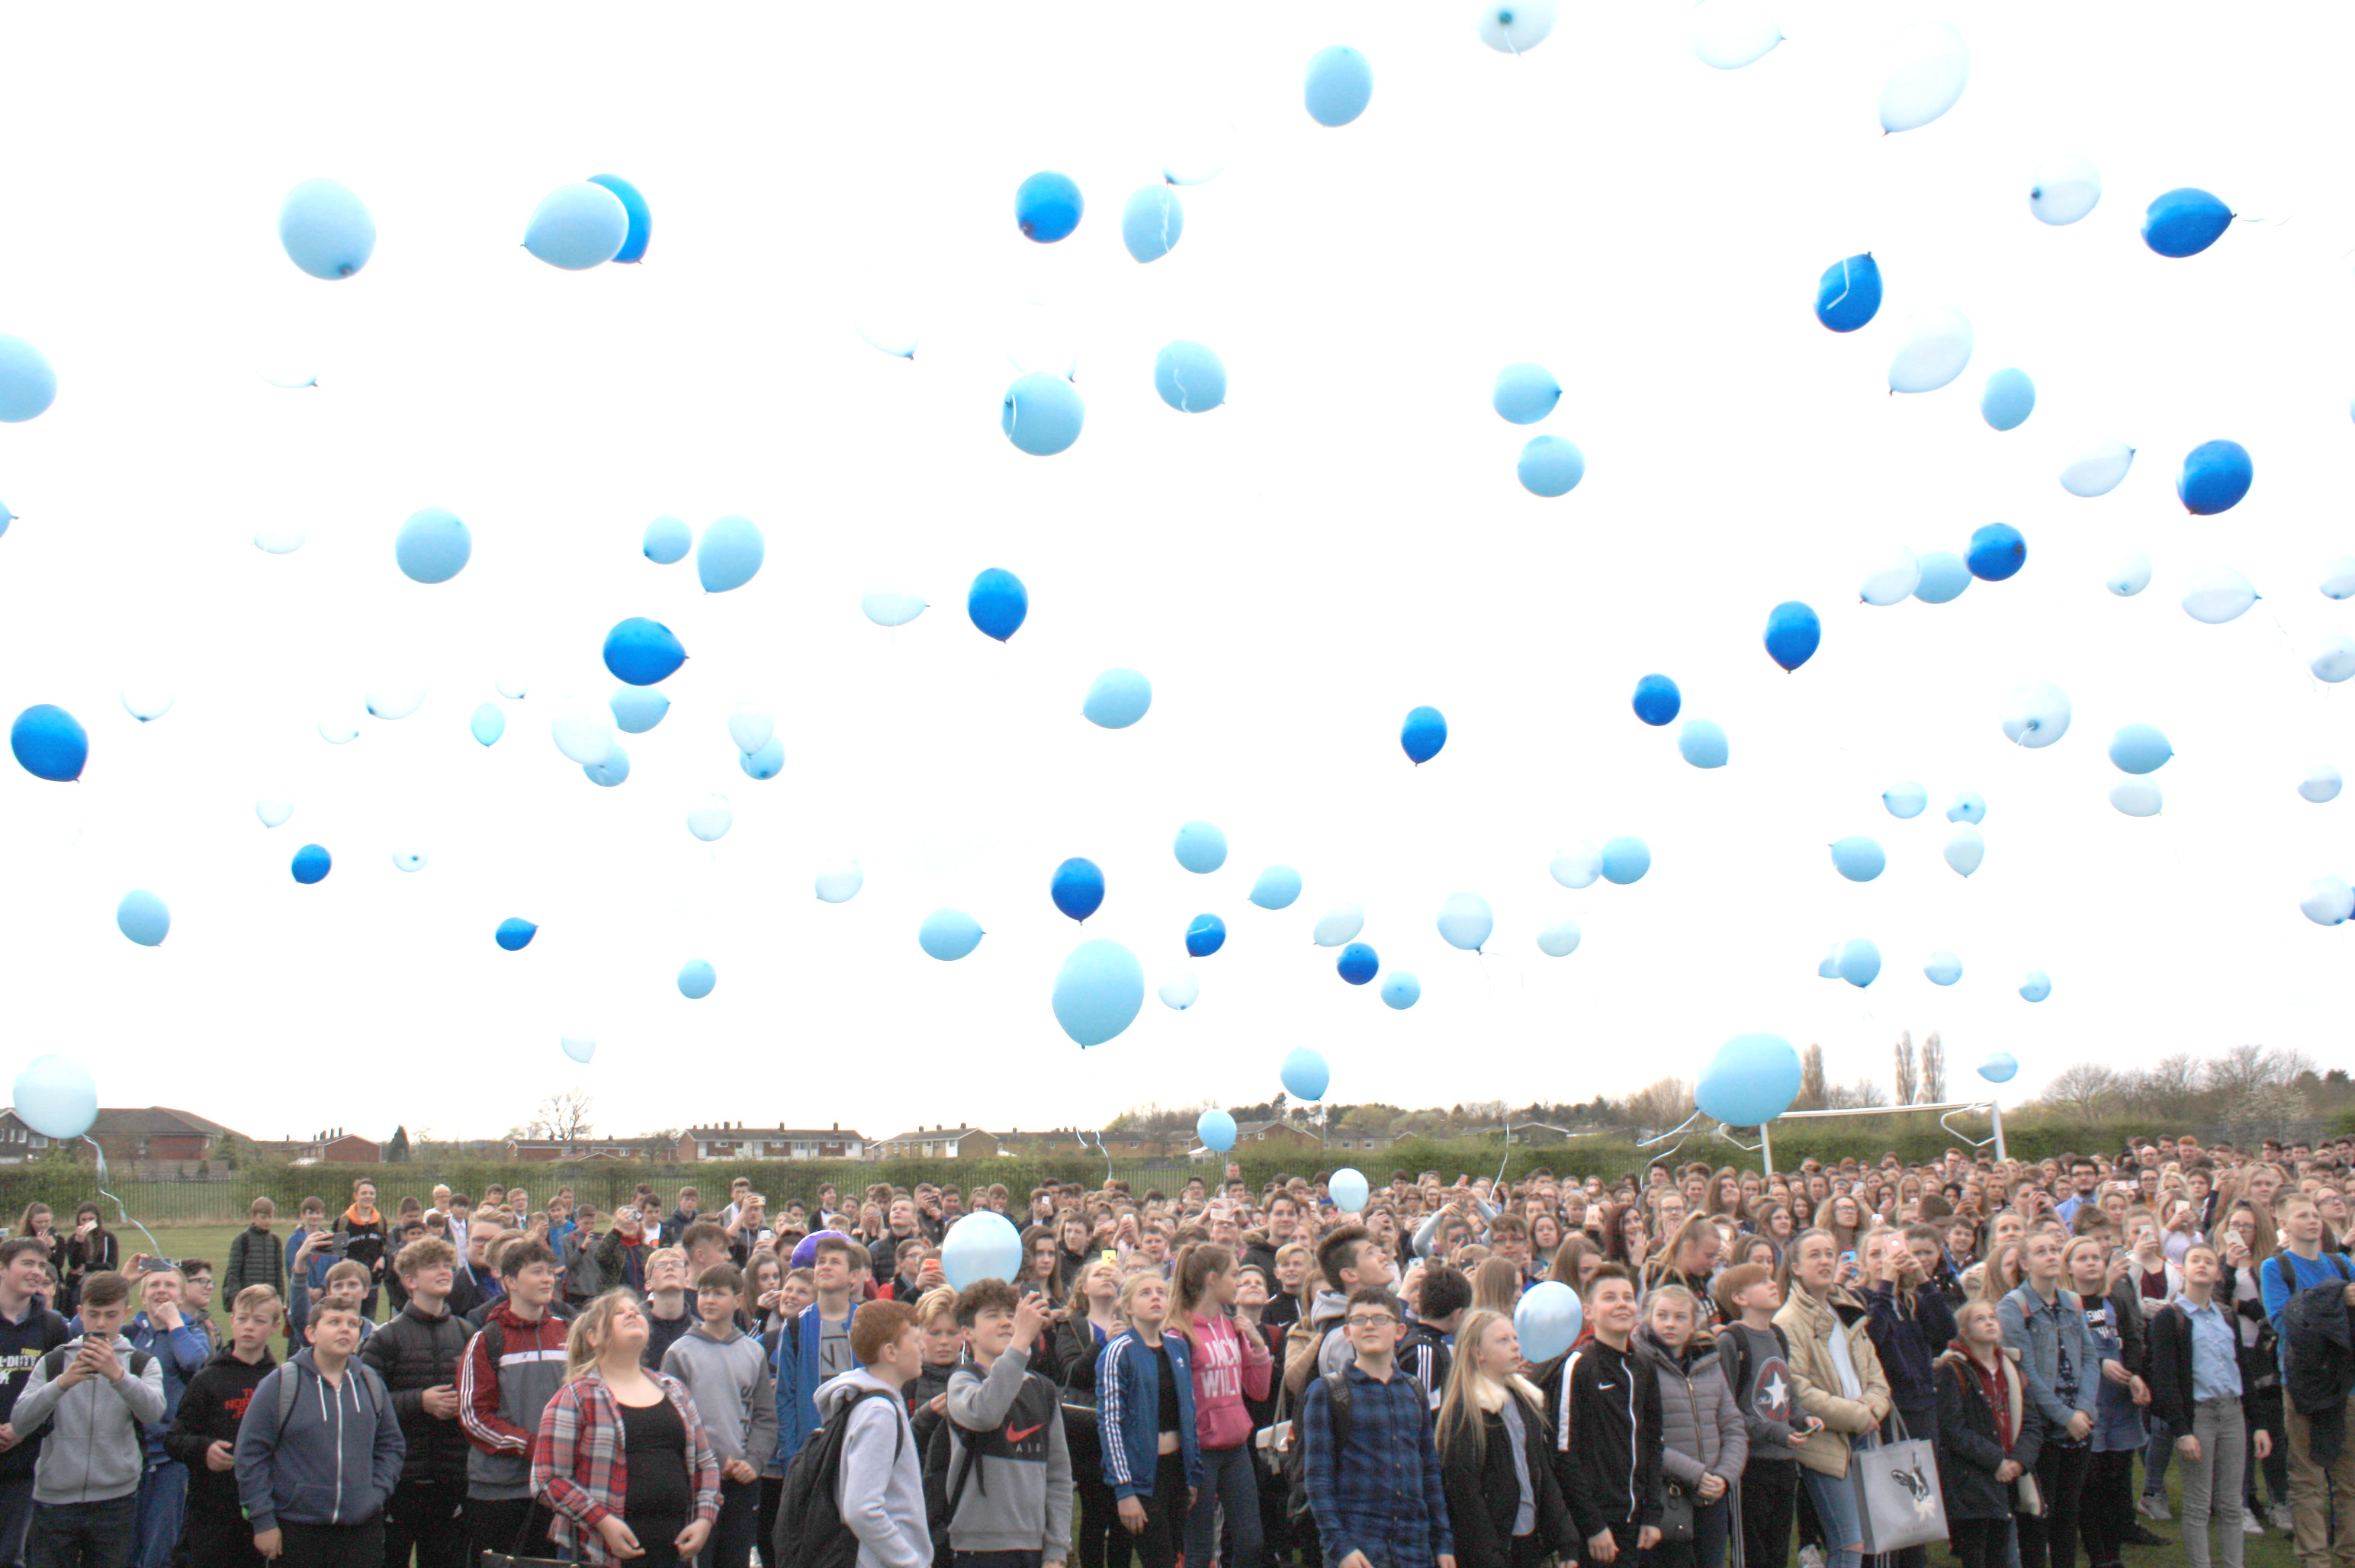 Blue Balloons & Applause for Emily